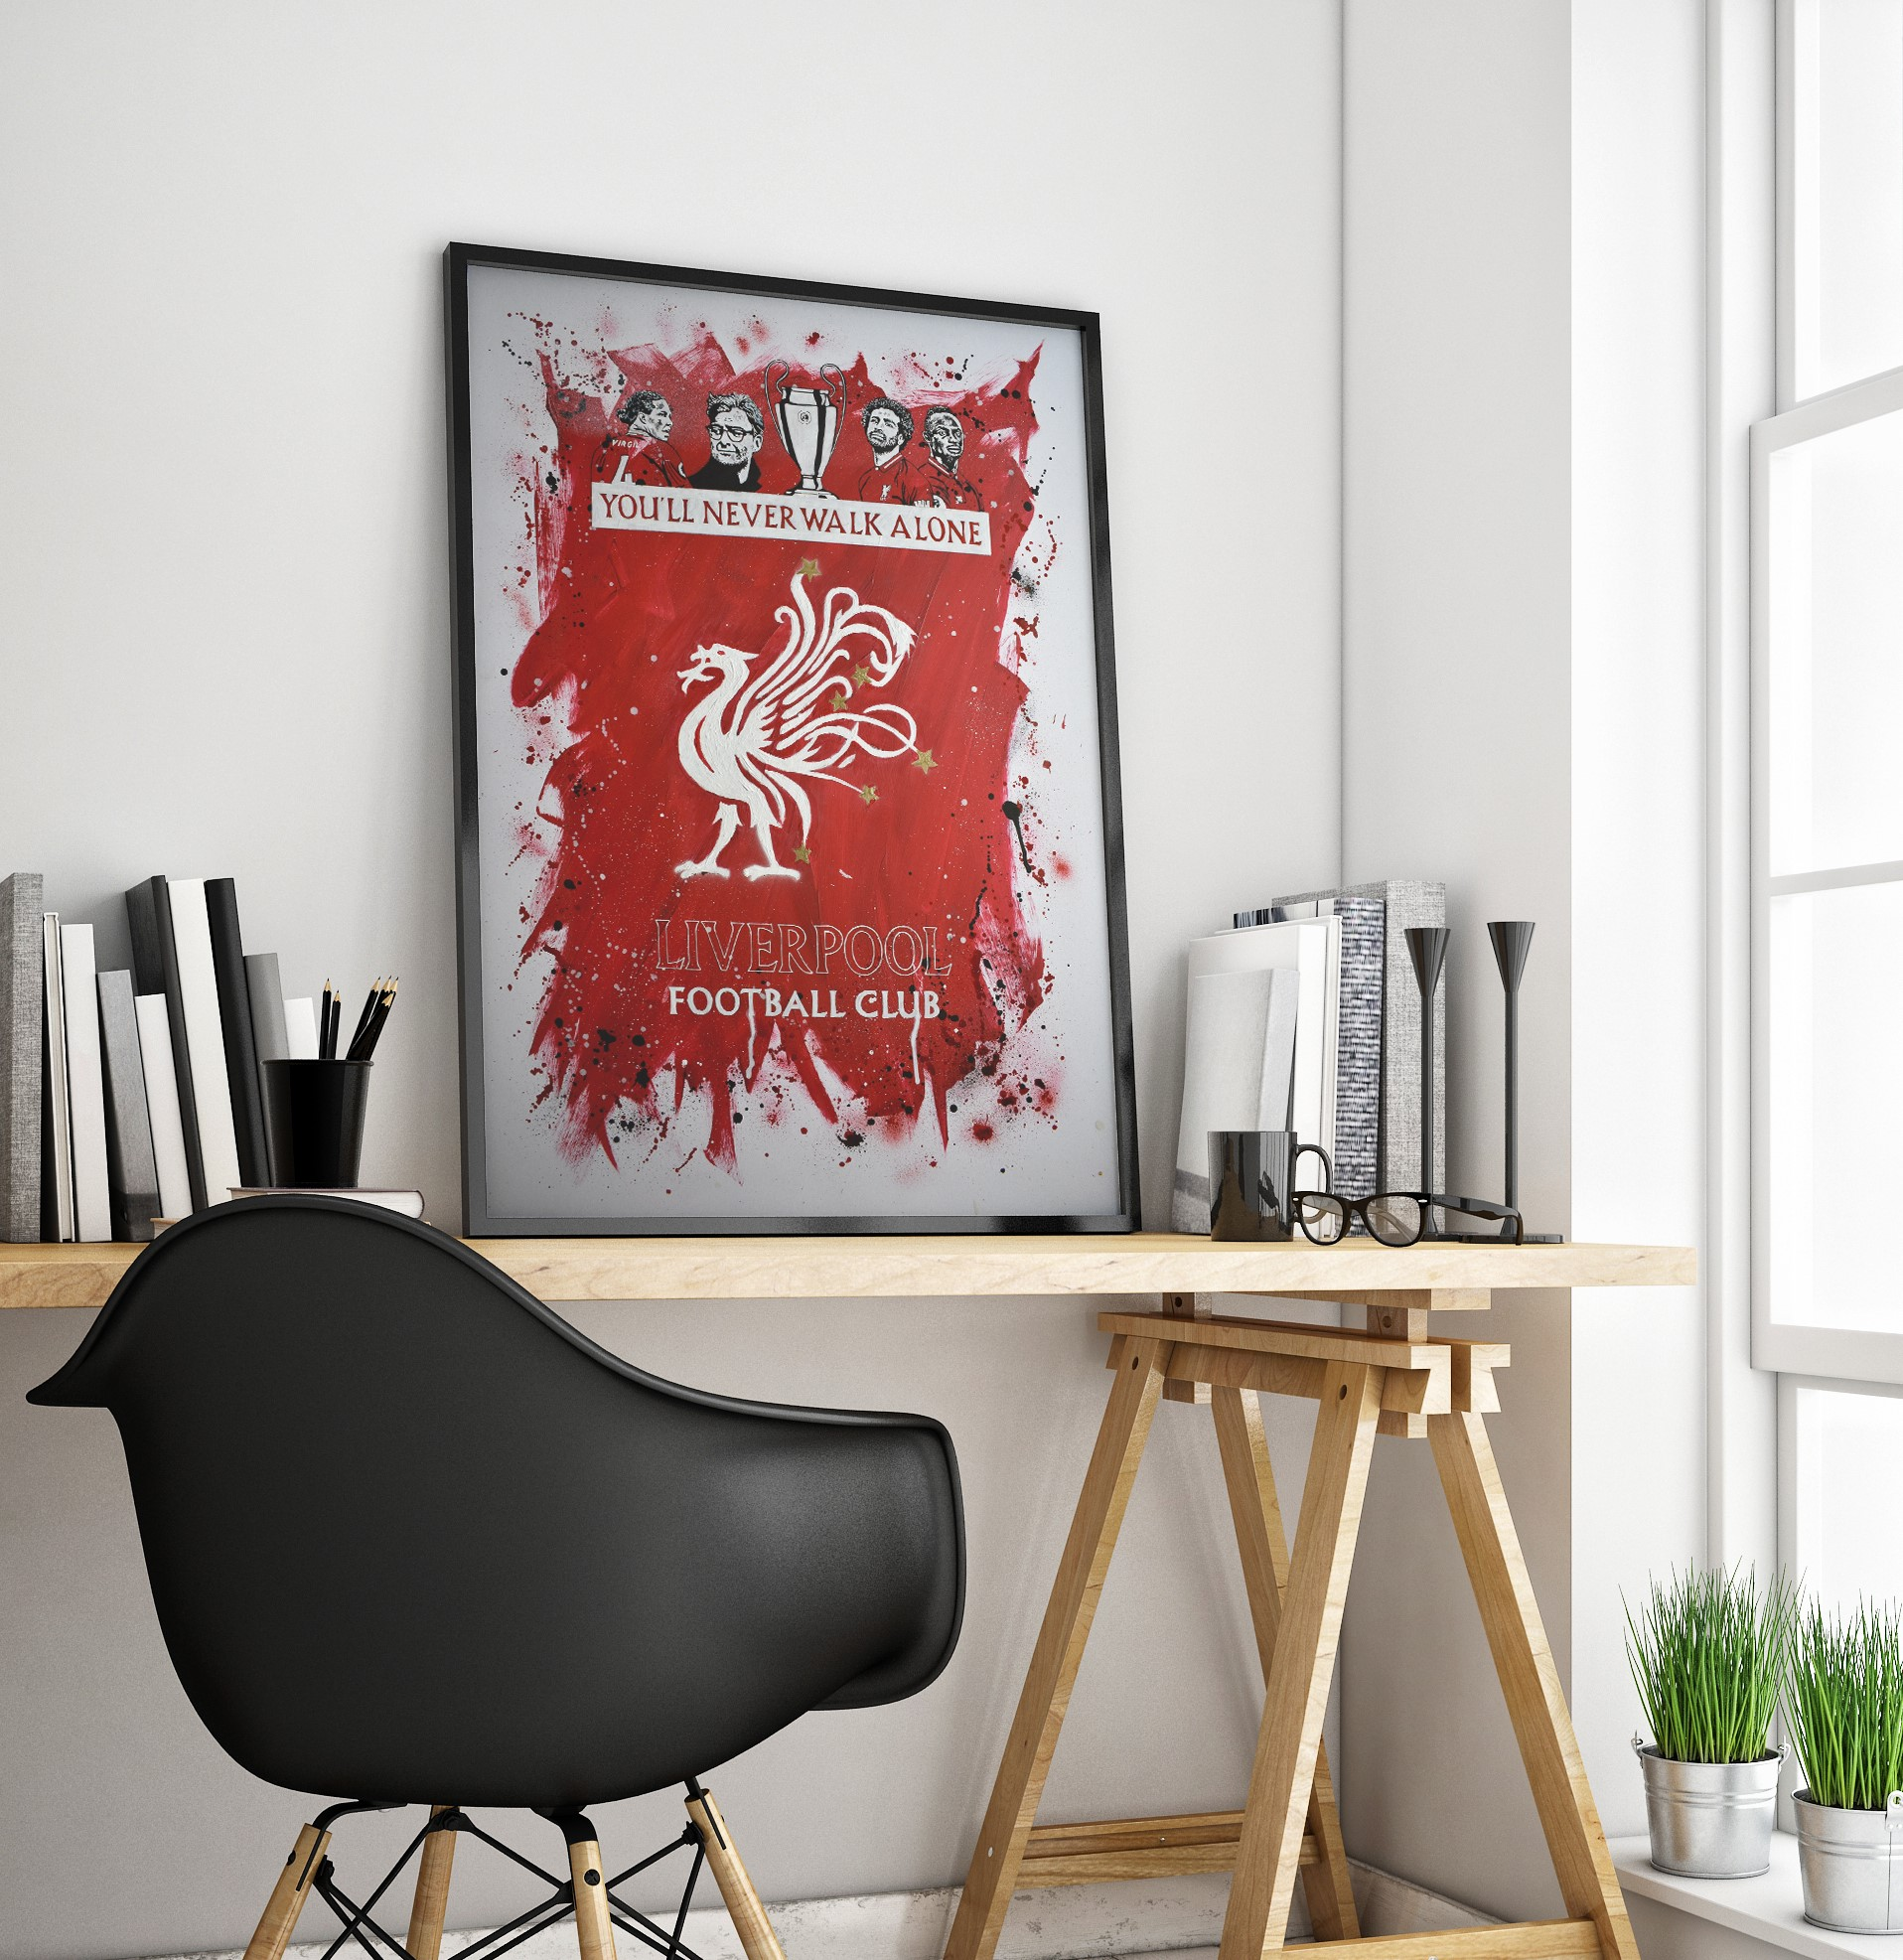 Liverpool FC - Champions League Winners - Ian Salmon Art - Painting - FRAMED - Mockup 5.jpg